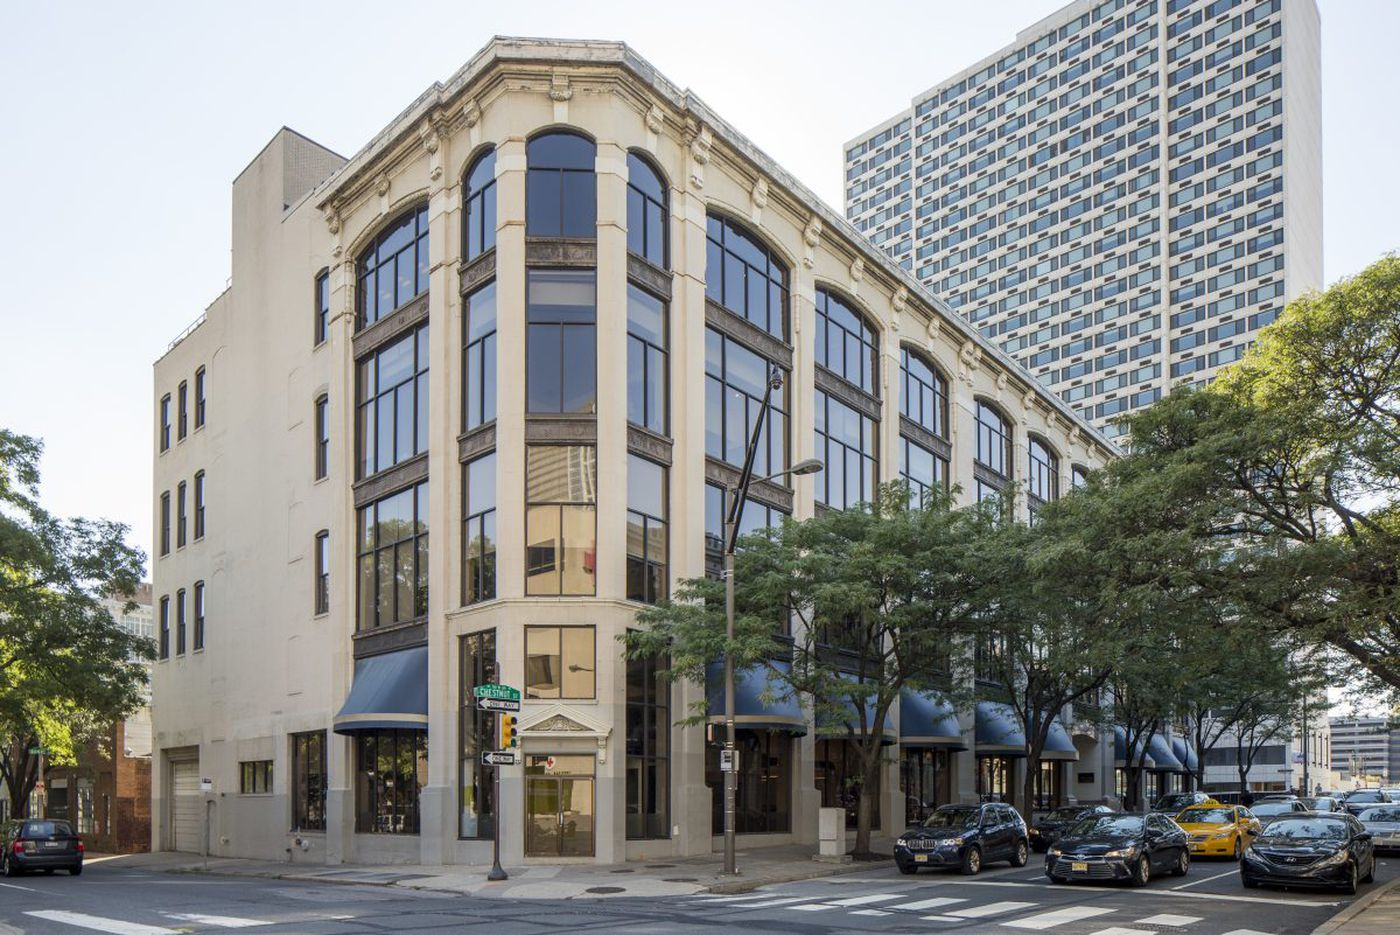 Office building housing Vanguard's Center City outpost sells for $28.8M